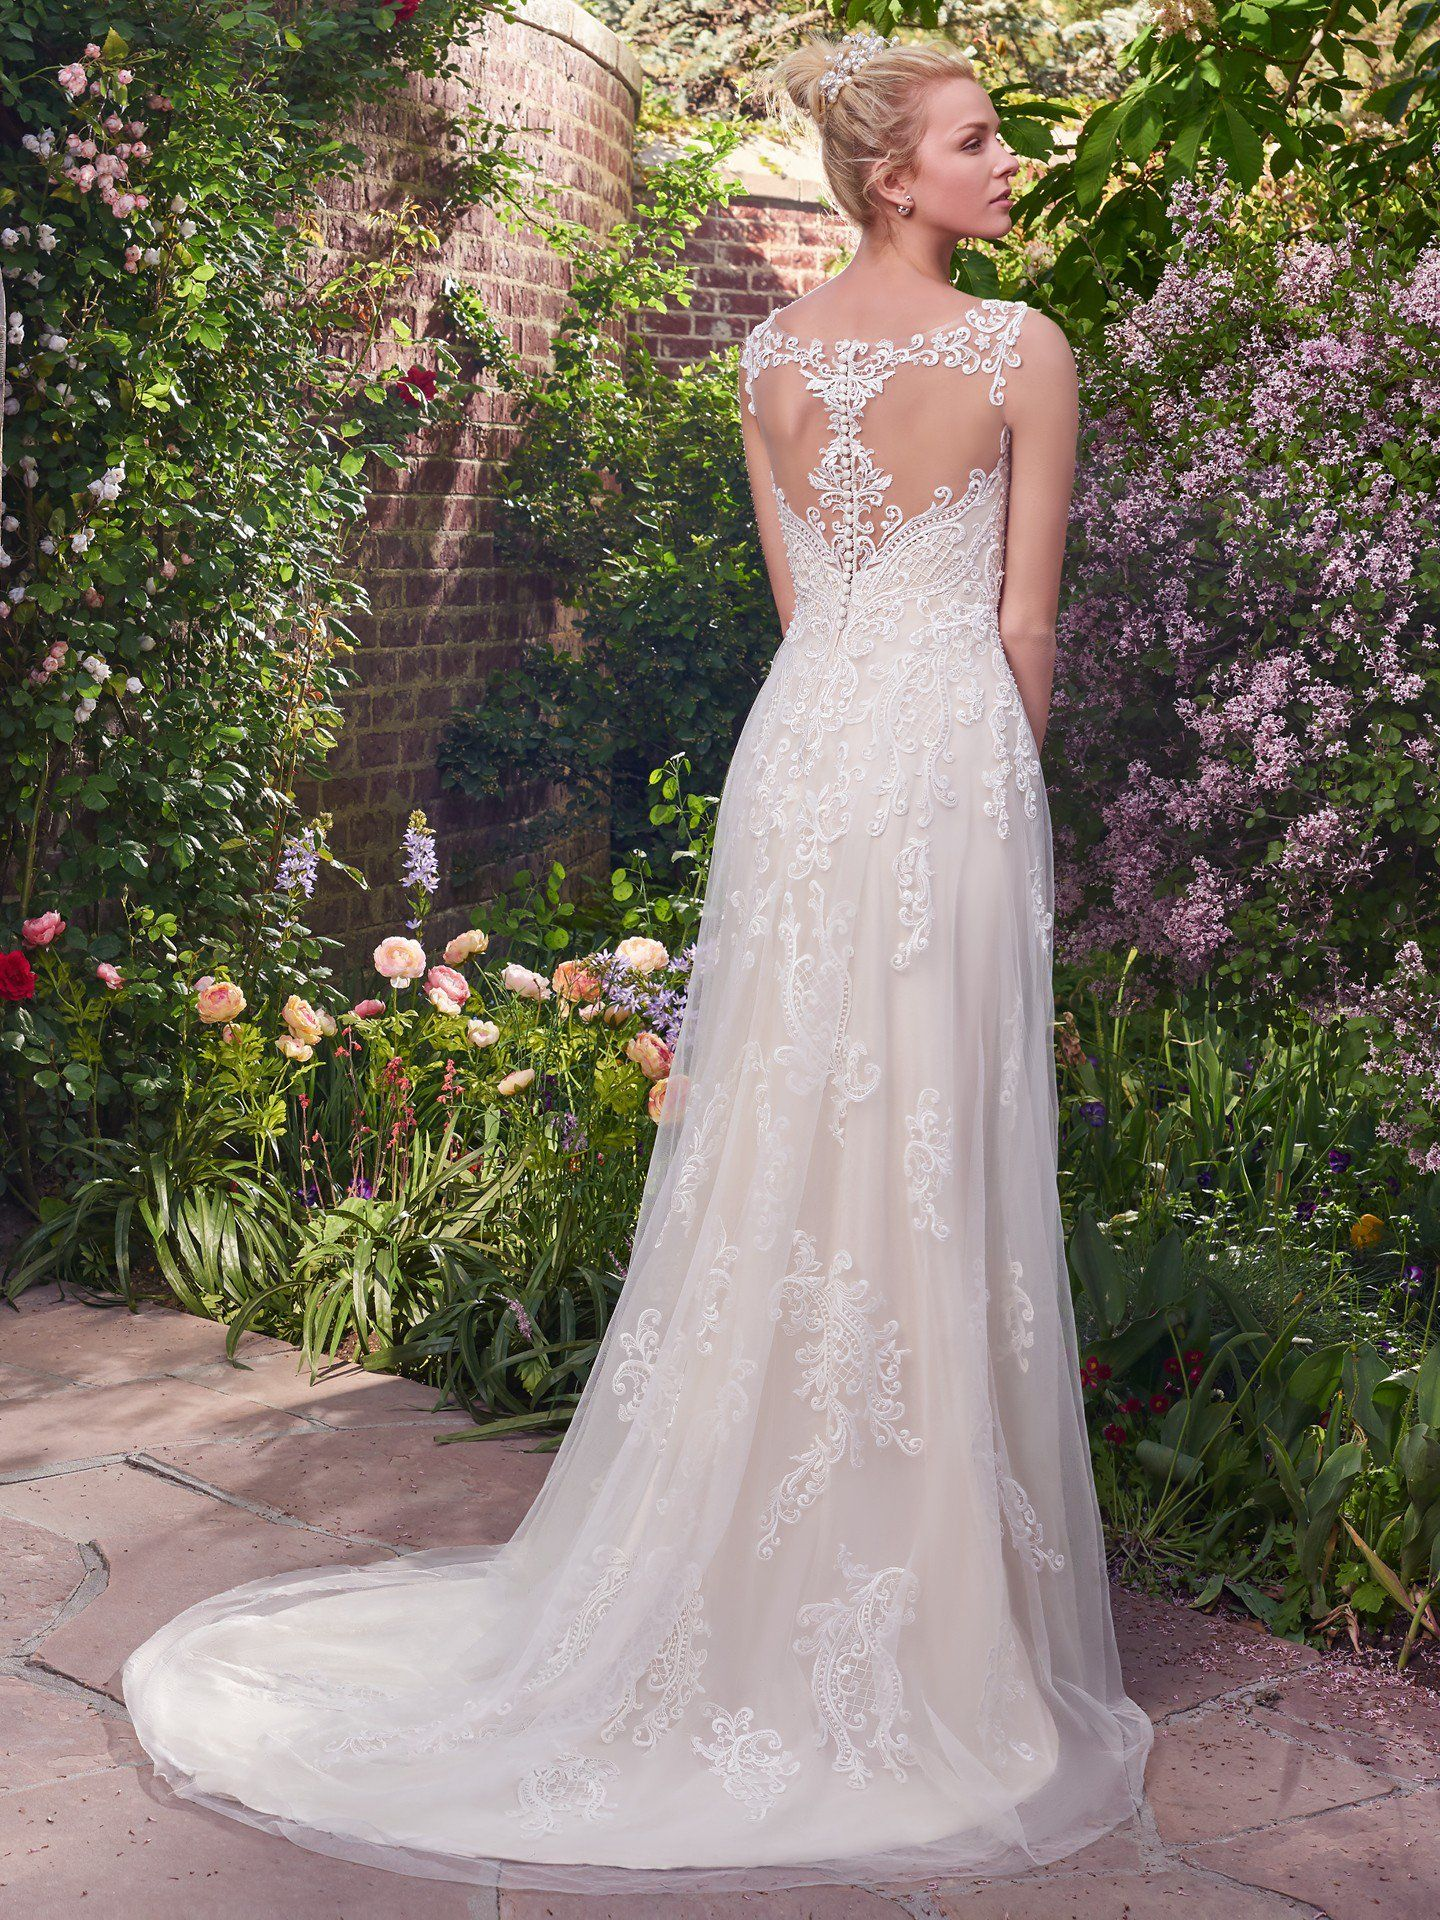 082d15da482 Illusion details accented in lace appliqués create beautiful back interest.  Finished with covered buttons over zipper closure. Alexis Wedding Dress ...